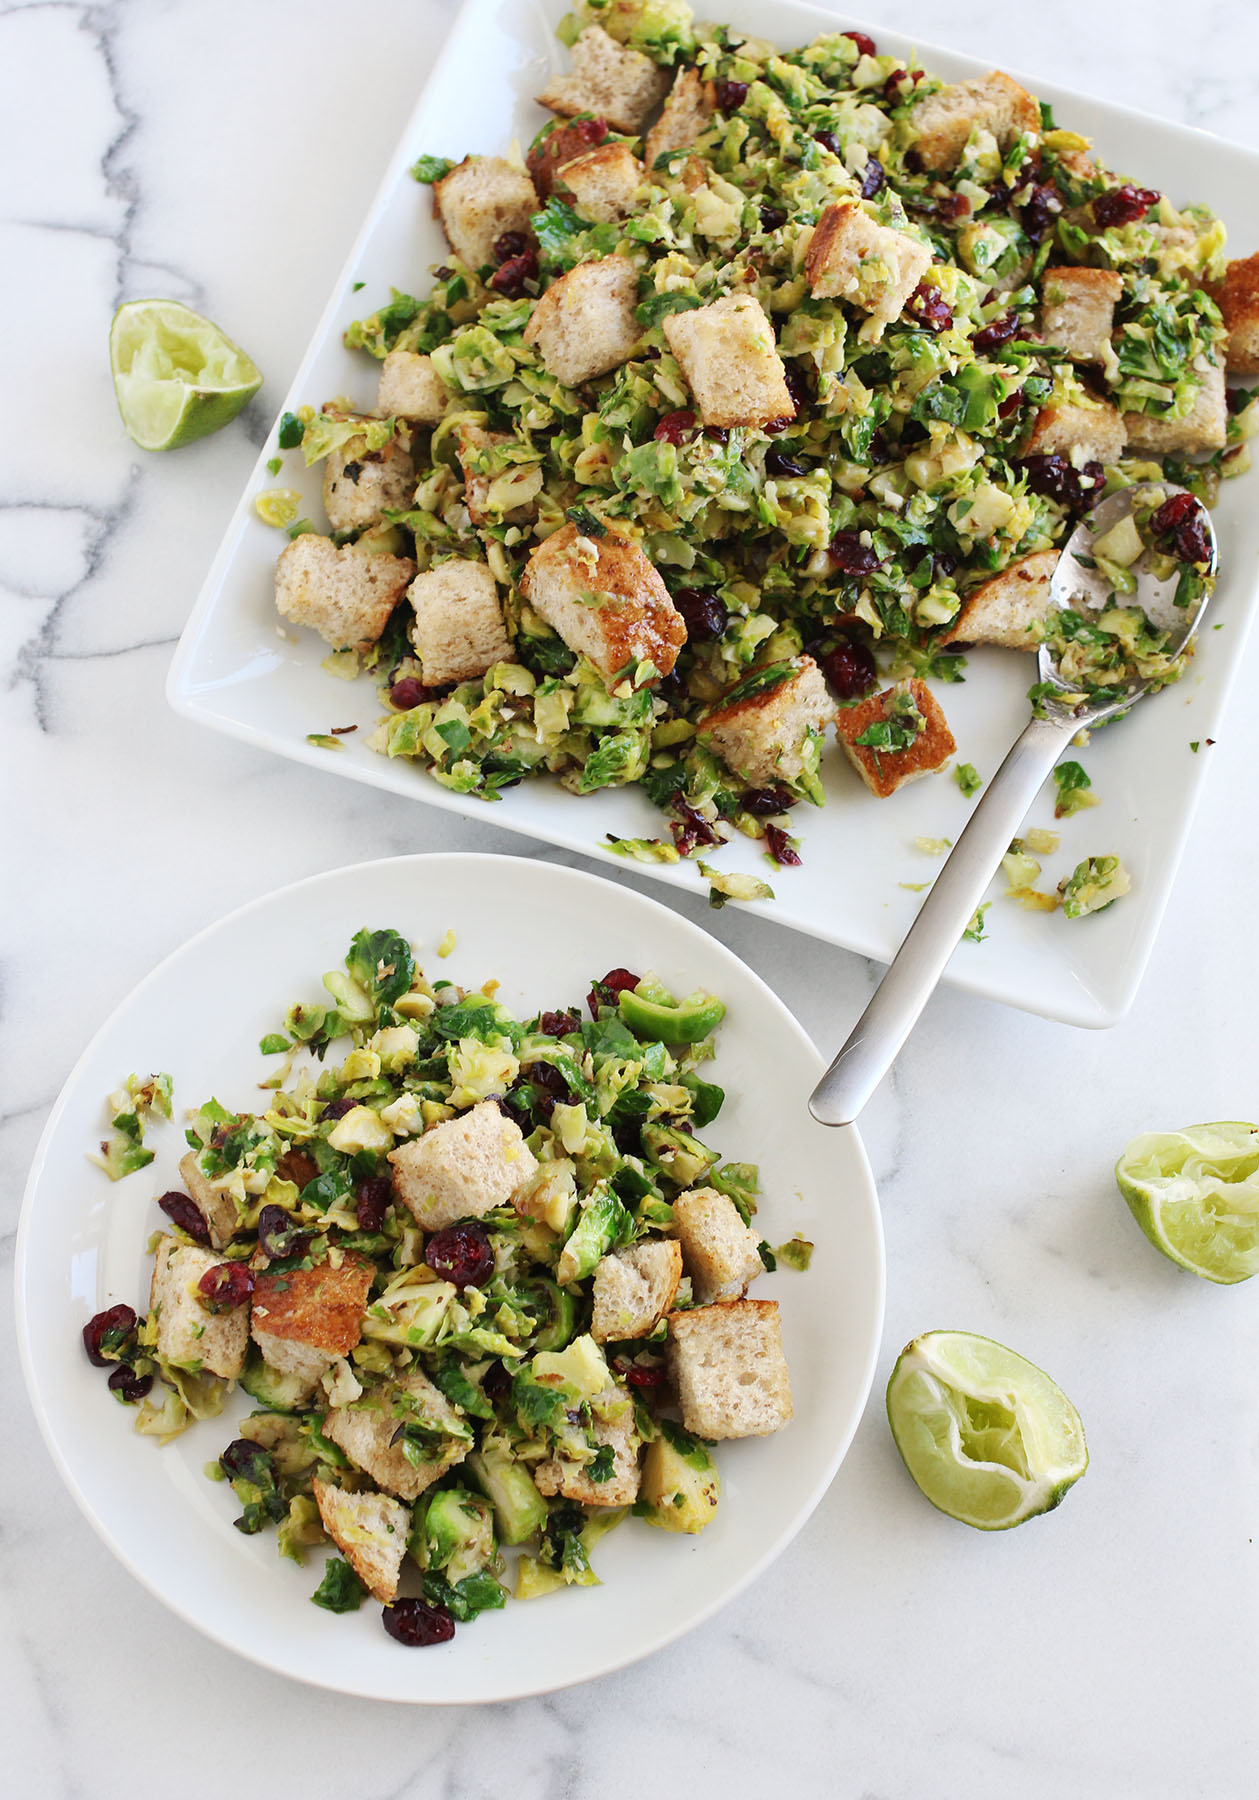 Best brussels sprout salad